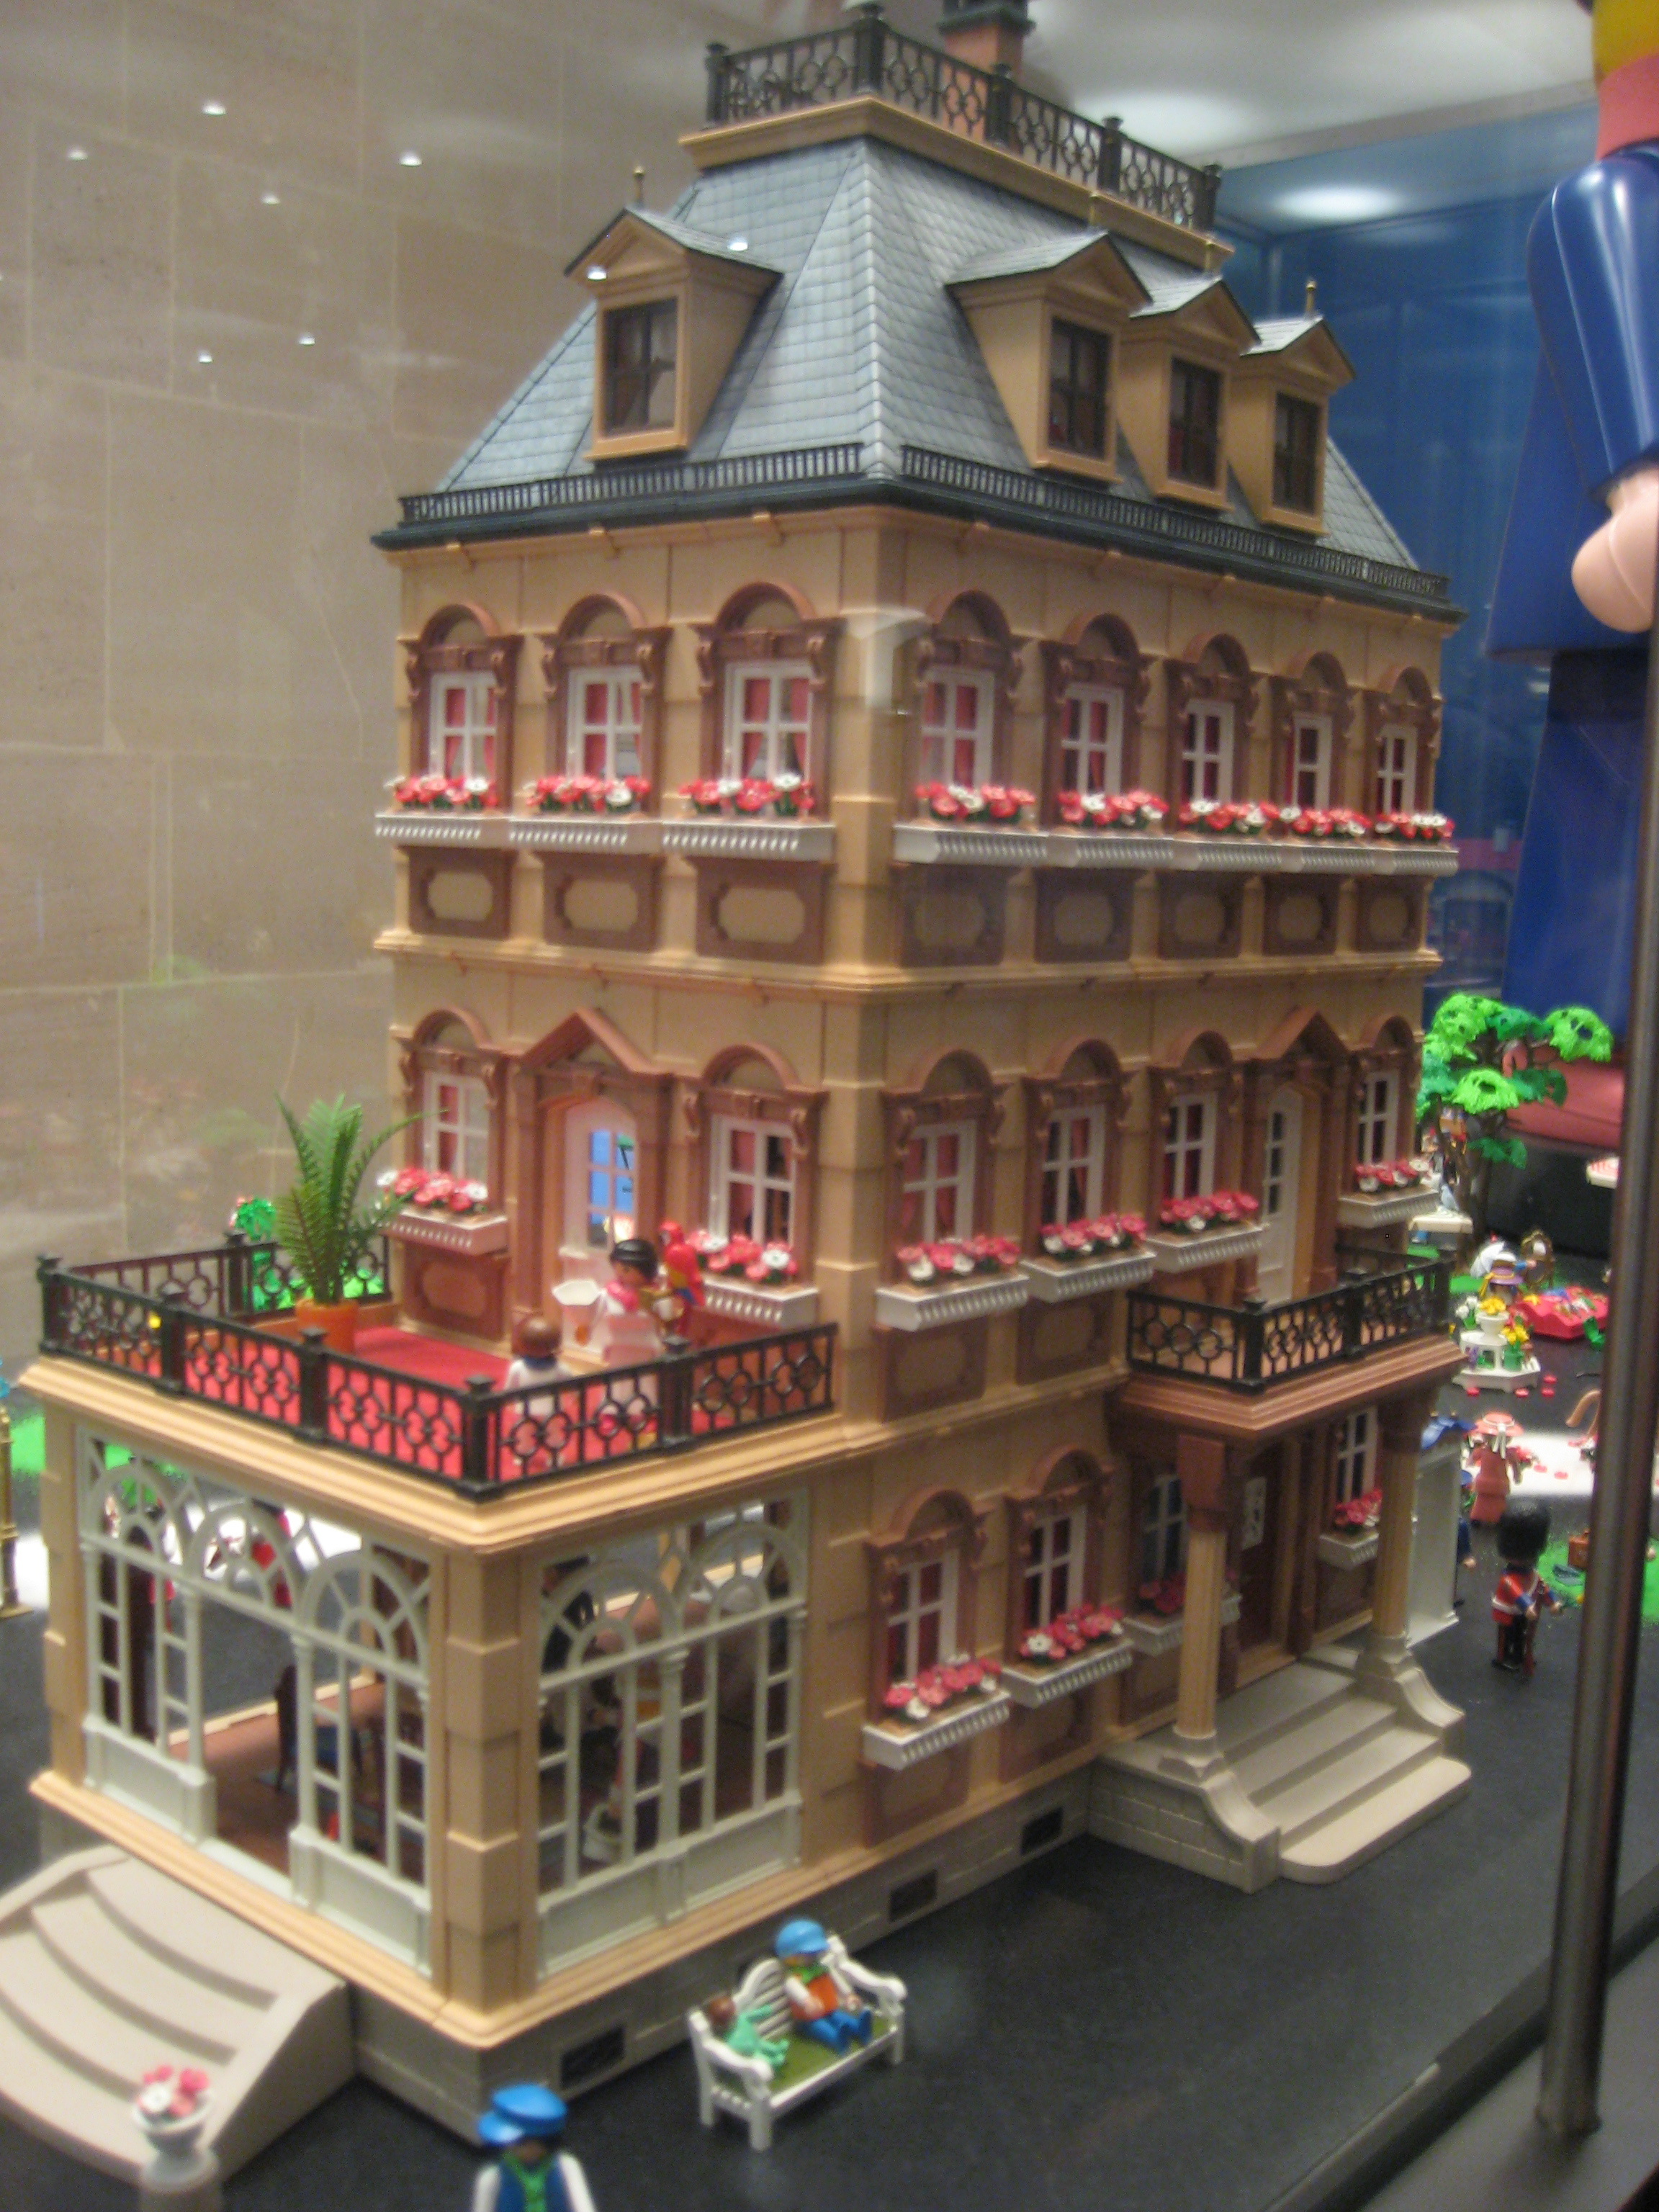 playmobil exhibition at les arts decoratifs